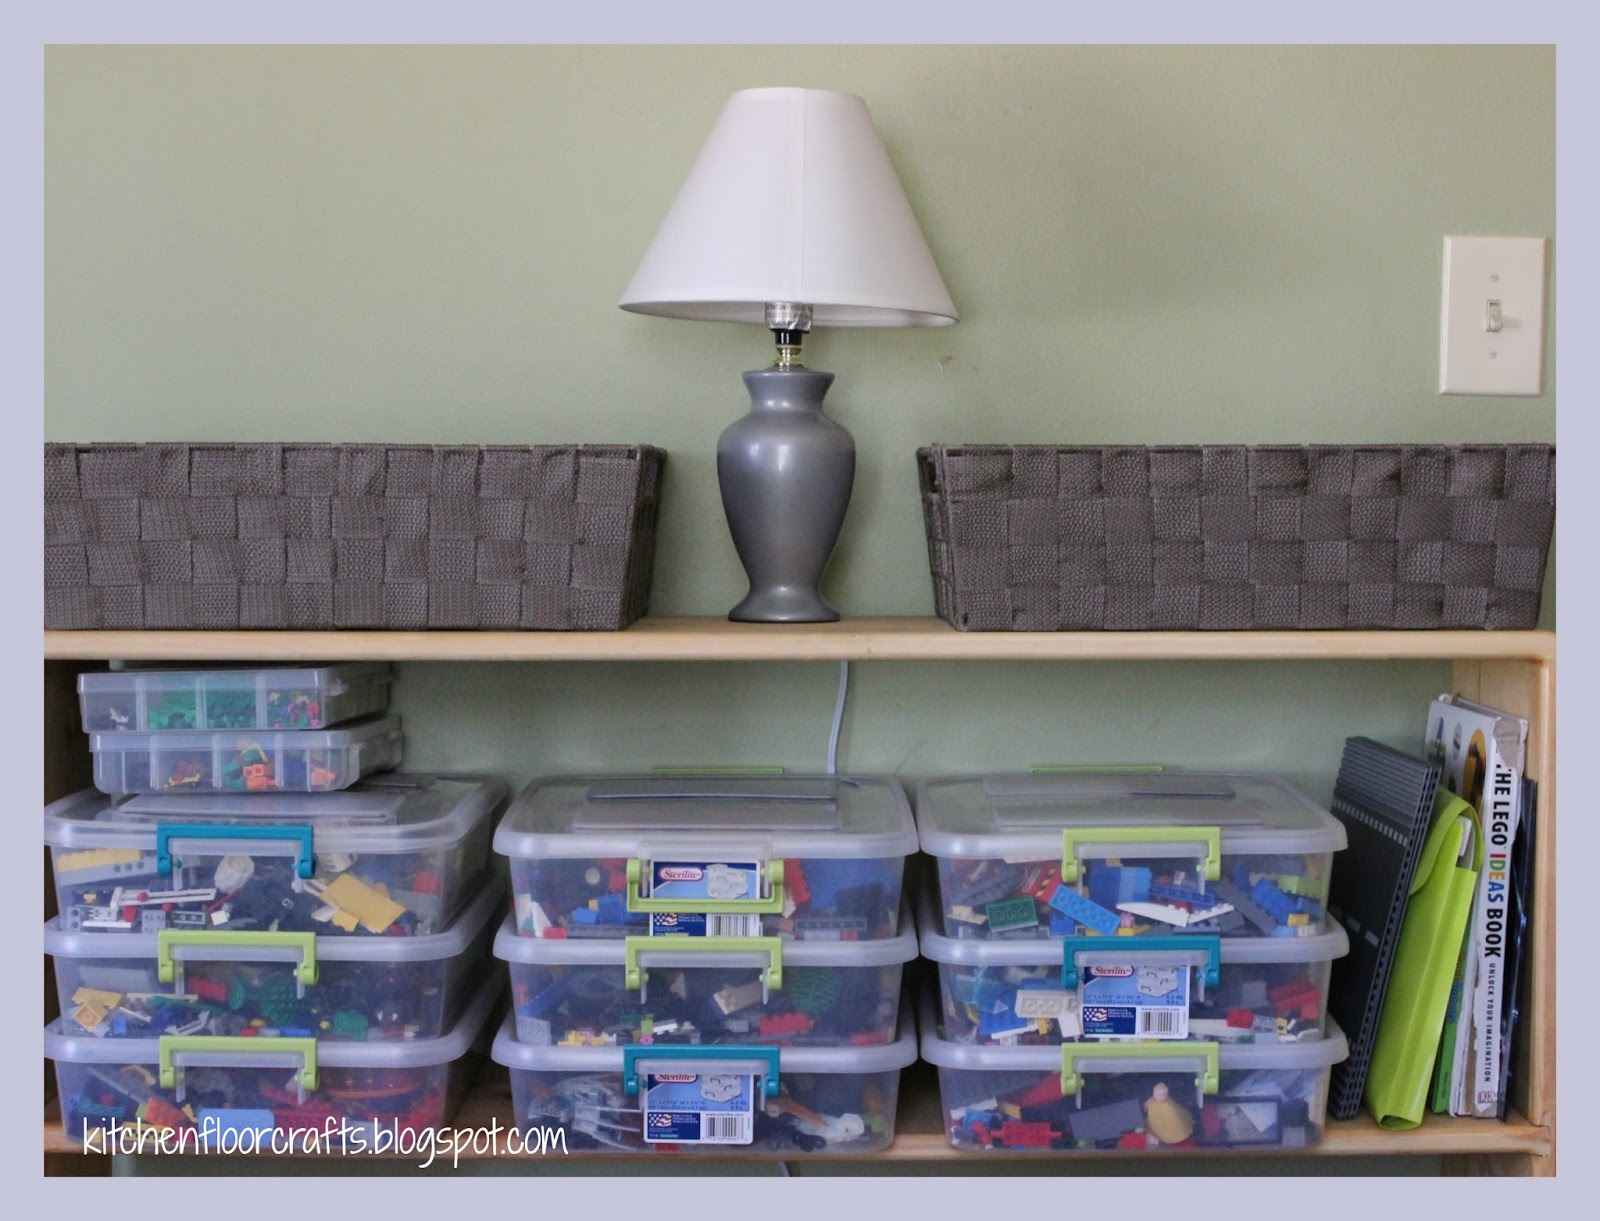 Kitchen Floor Crafts 7 Tips For Lego Storage Amp Organization